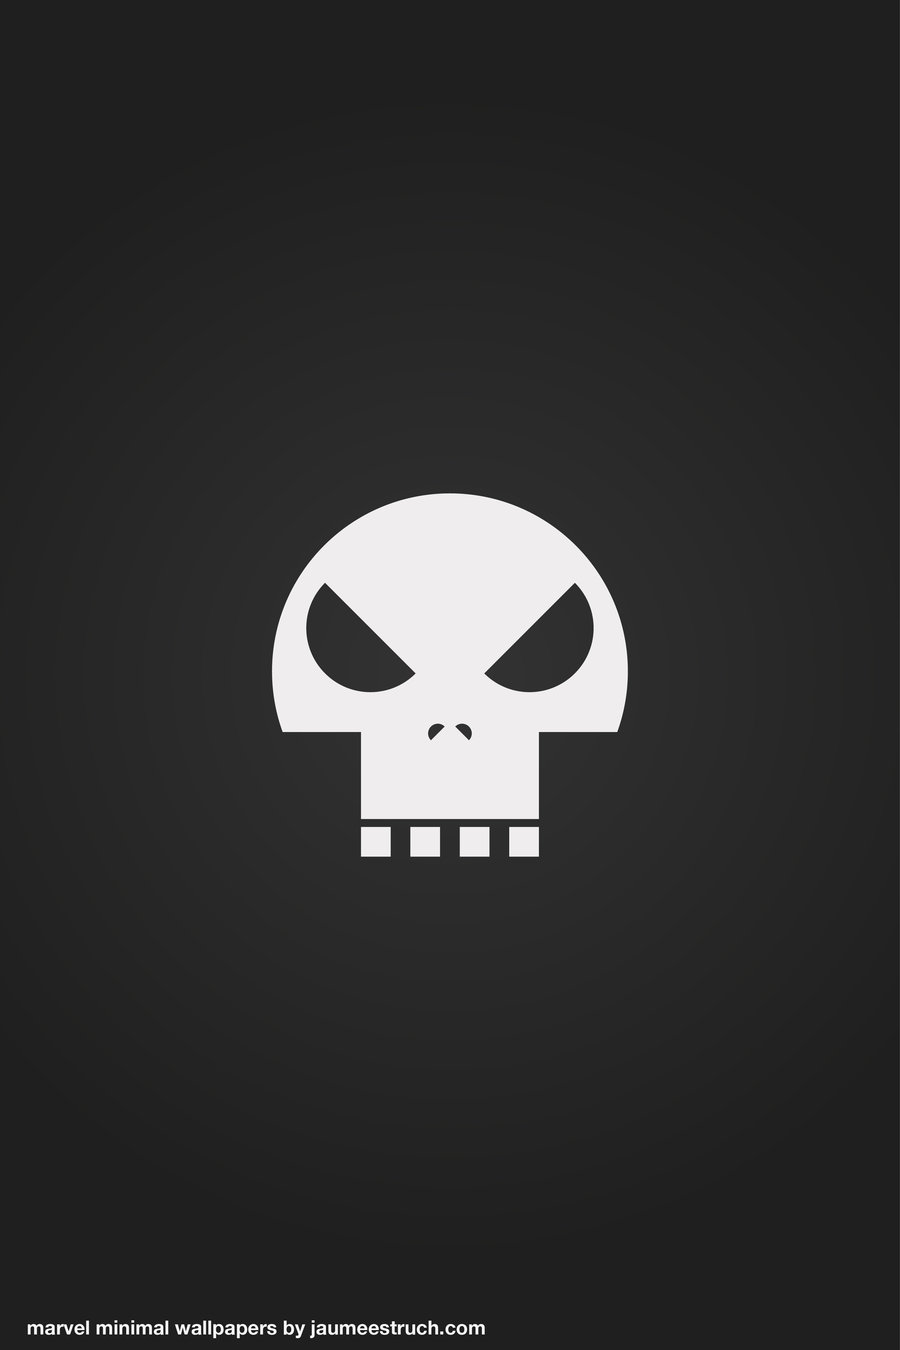 Punisher Iphone Wallpaper The Punisher Wallpaper Iphone